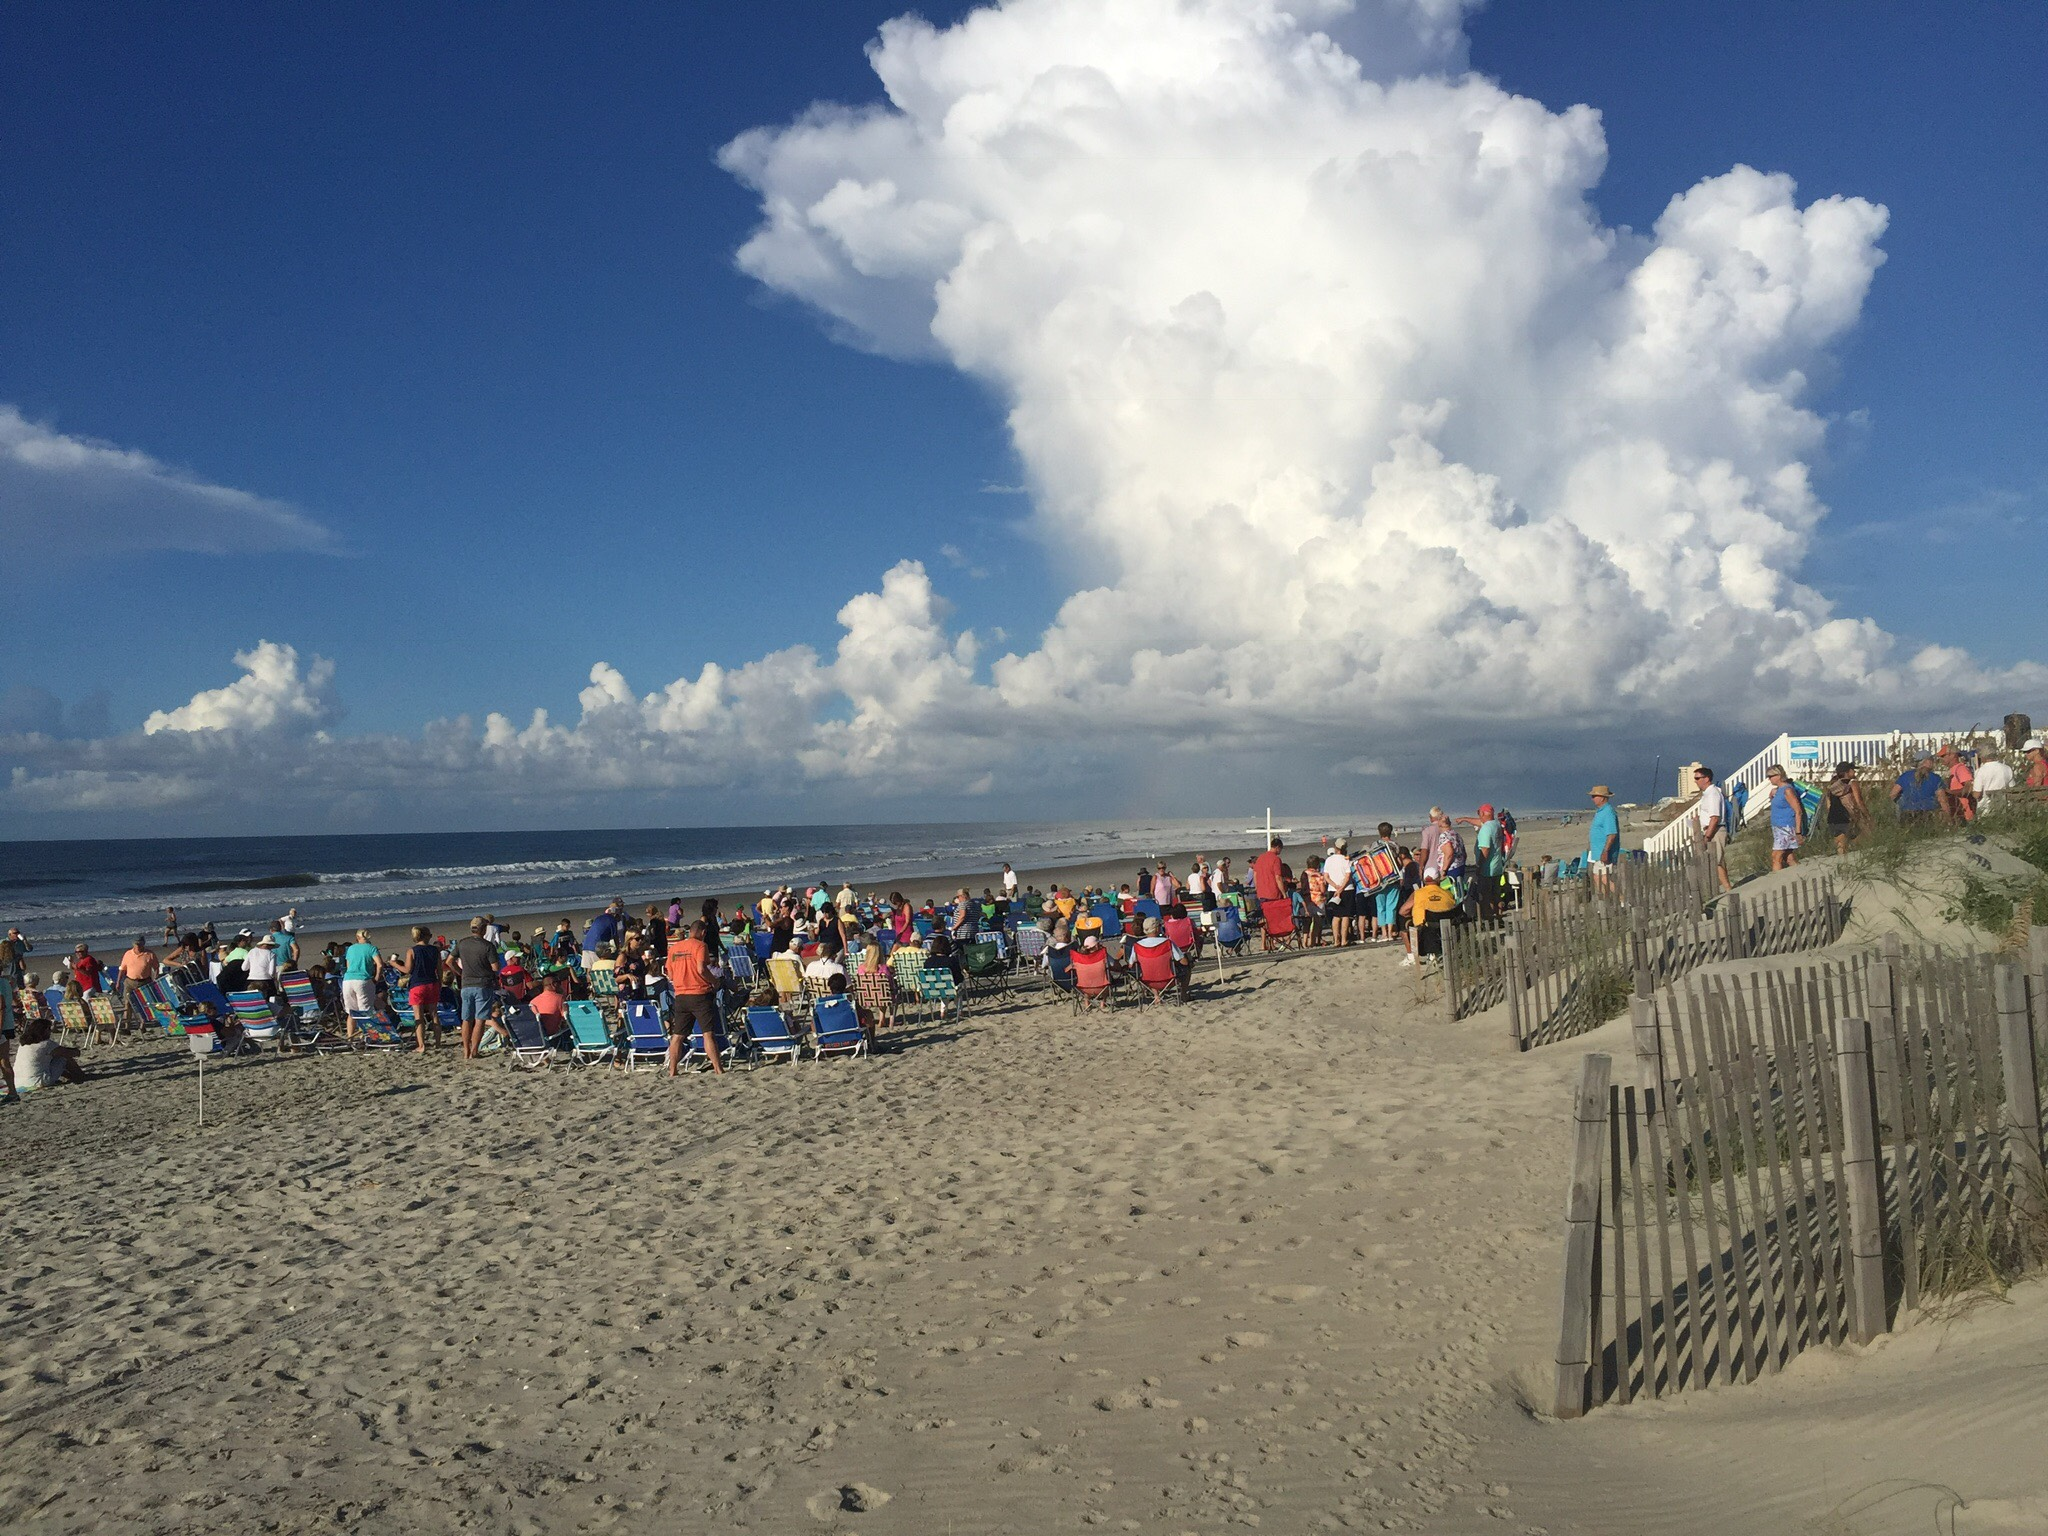 <div class='slider_caption'>		 <h1>2019 marks our 53rd year of worship on Ocean Isle Beach at the Driftwood Access</h1>			<a class='slider-readmore' href=''>Read More</a>